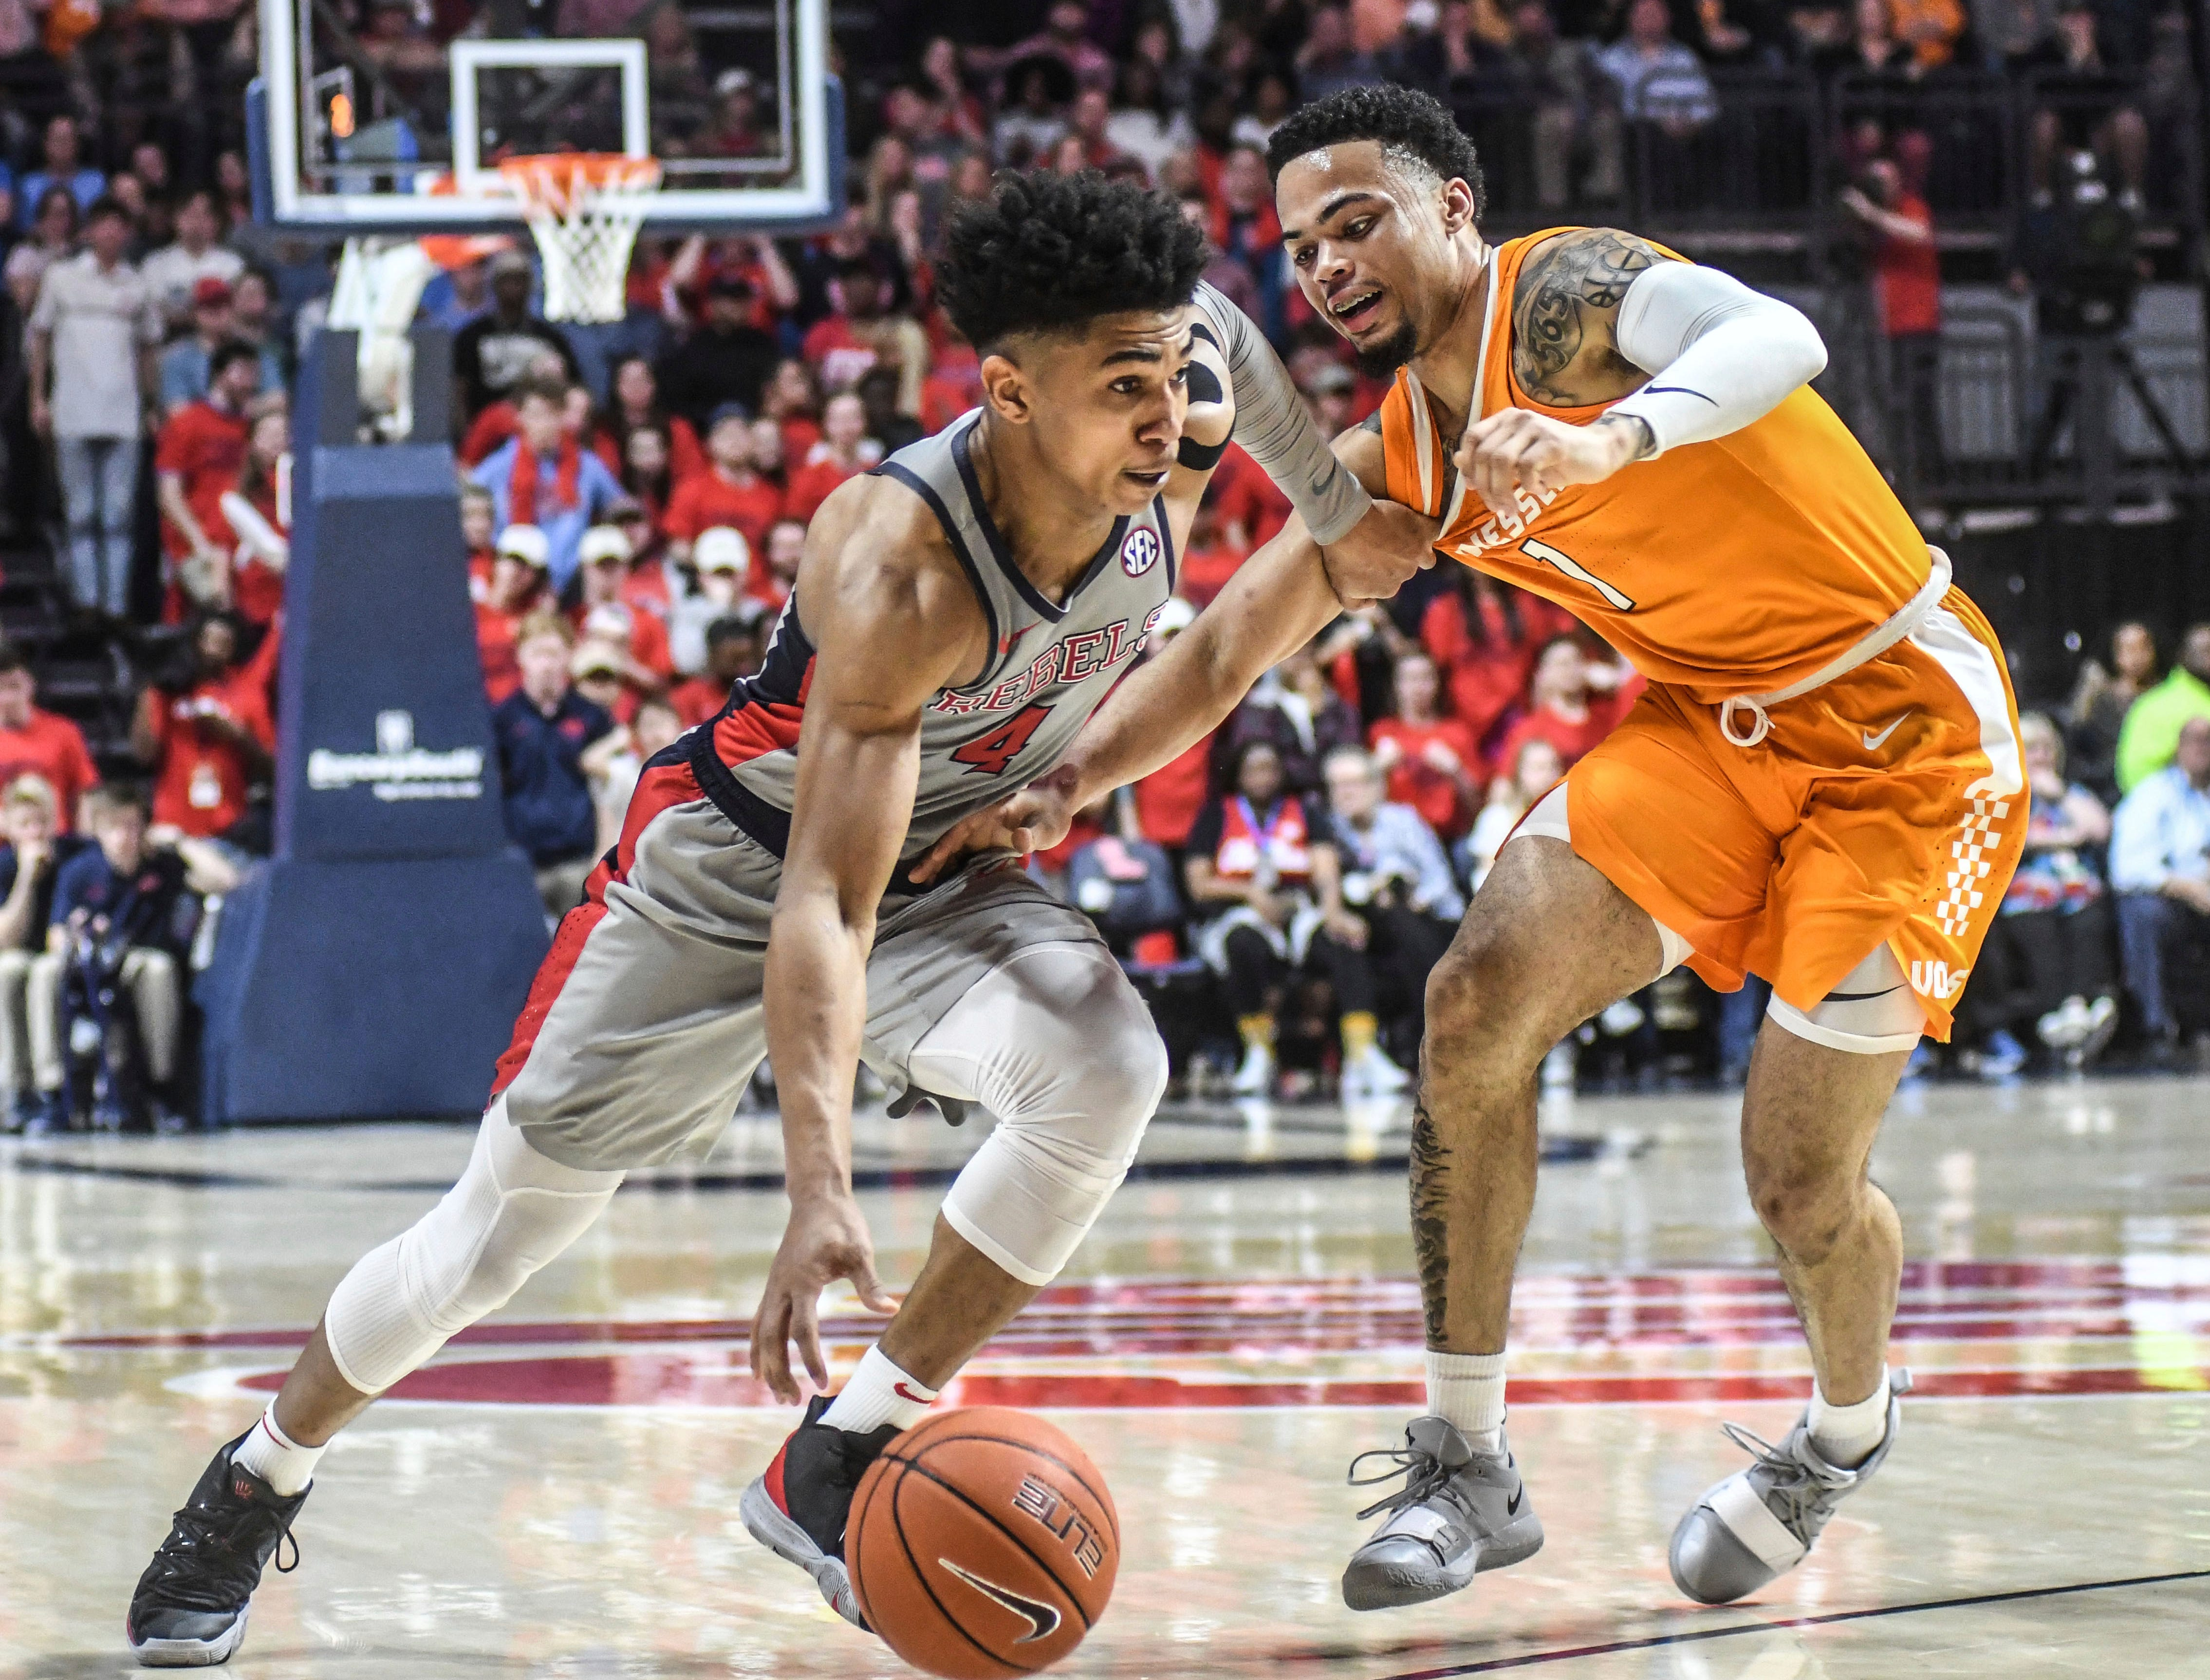 Mississippi guard Breein Tyree (4) drives against Tennessee's Lamonte' Turner (1) during the first half of an NCAA college basketball game, Wednesday, Feb. 27, 2019 in Oxford, Miss. (Bruce Newman/The Oxford Eagle via AP)